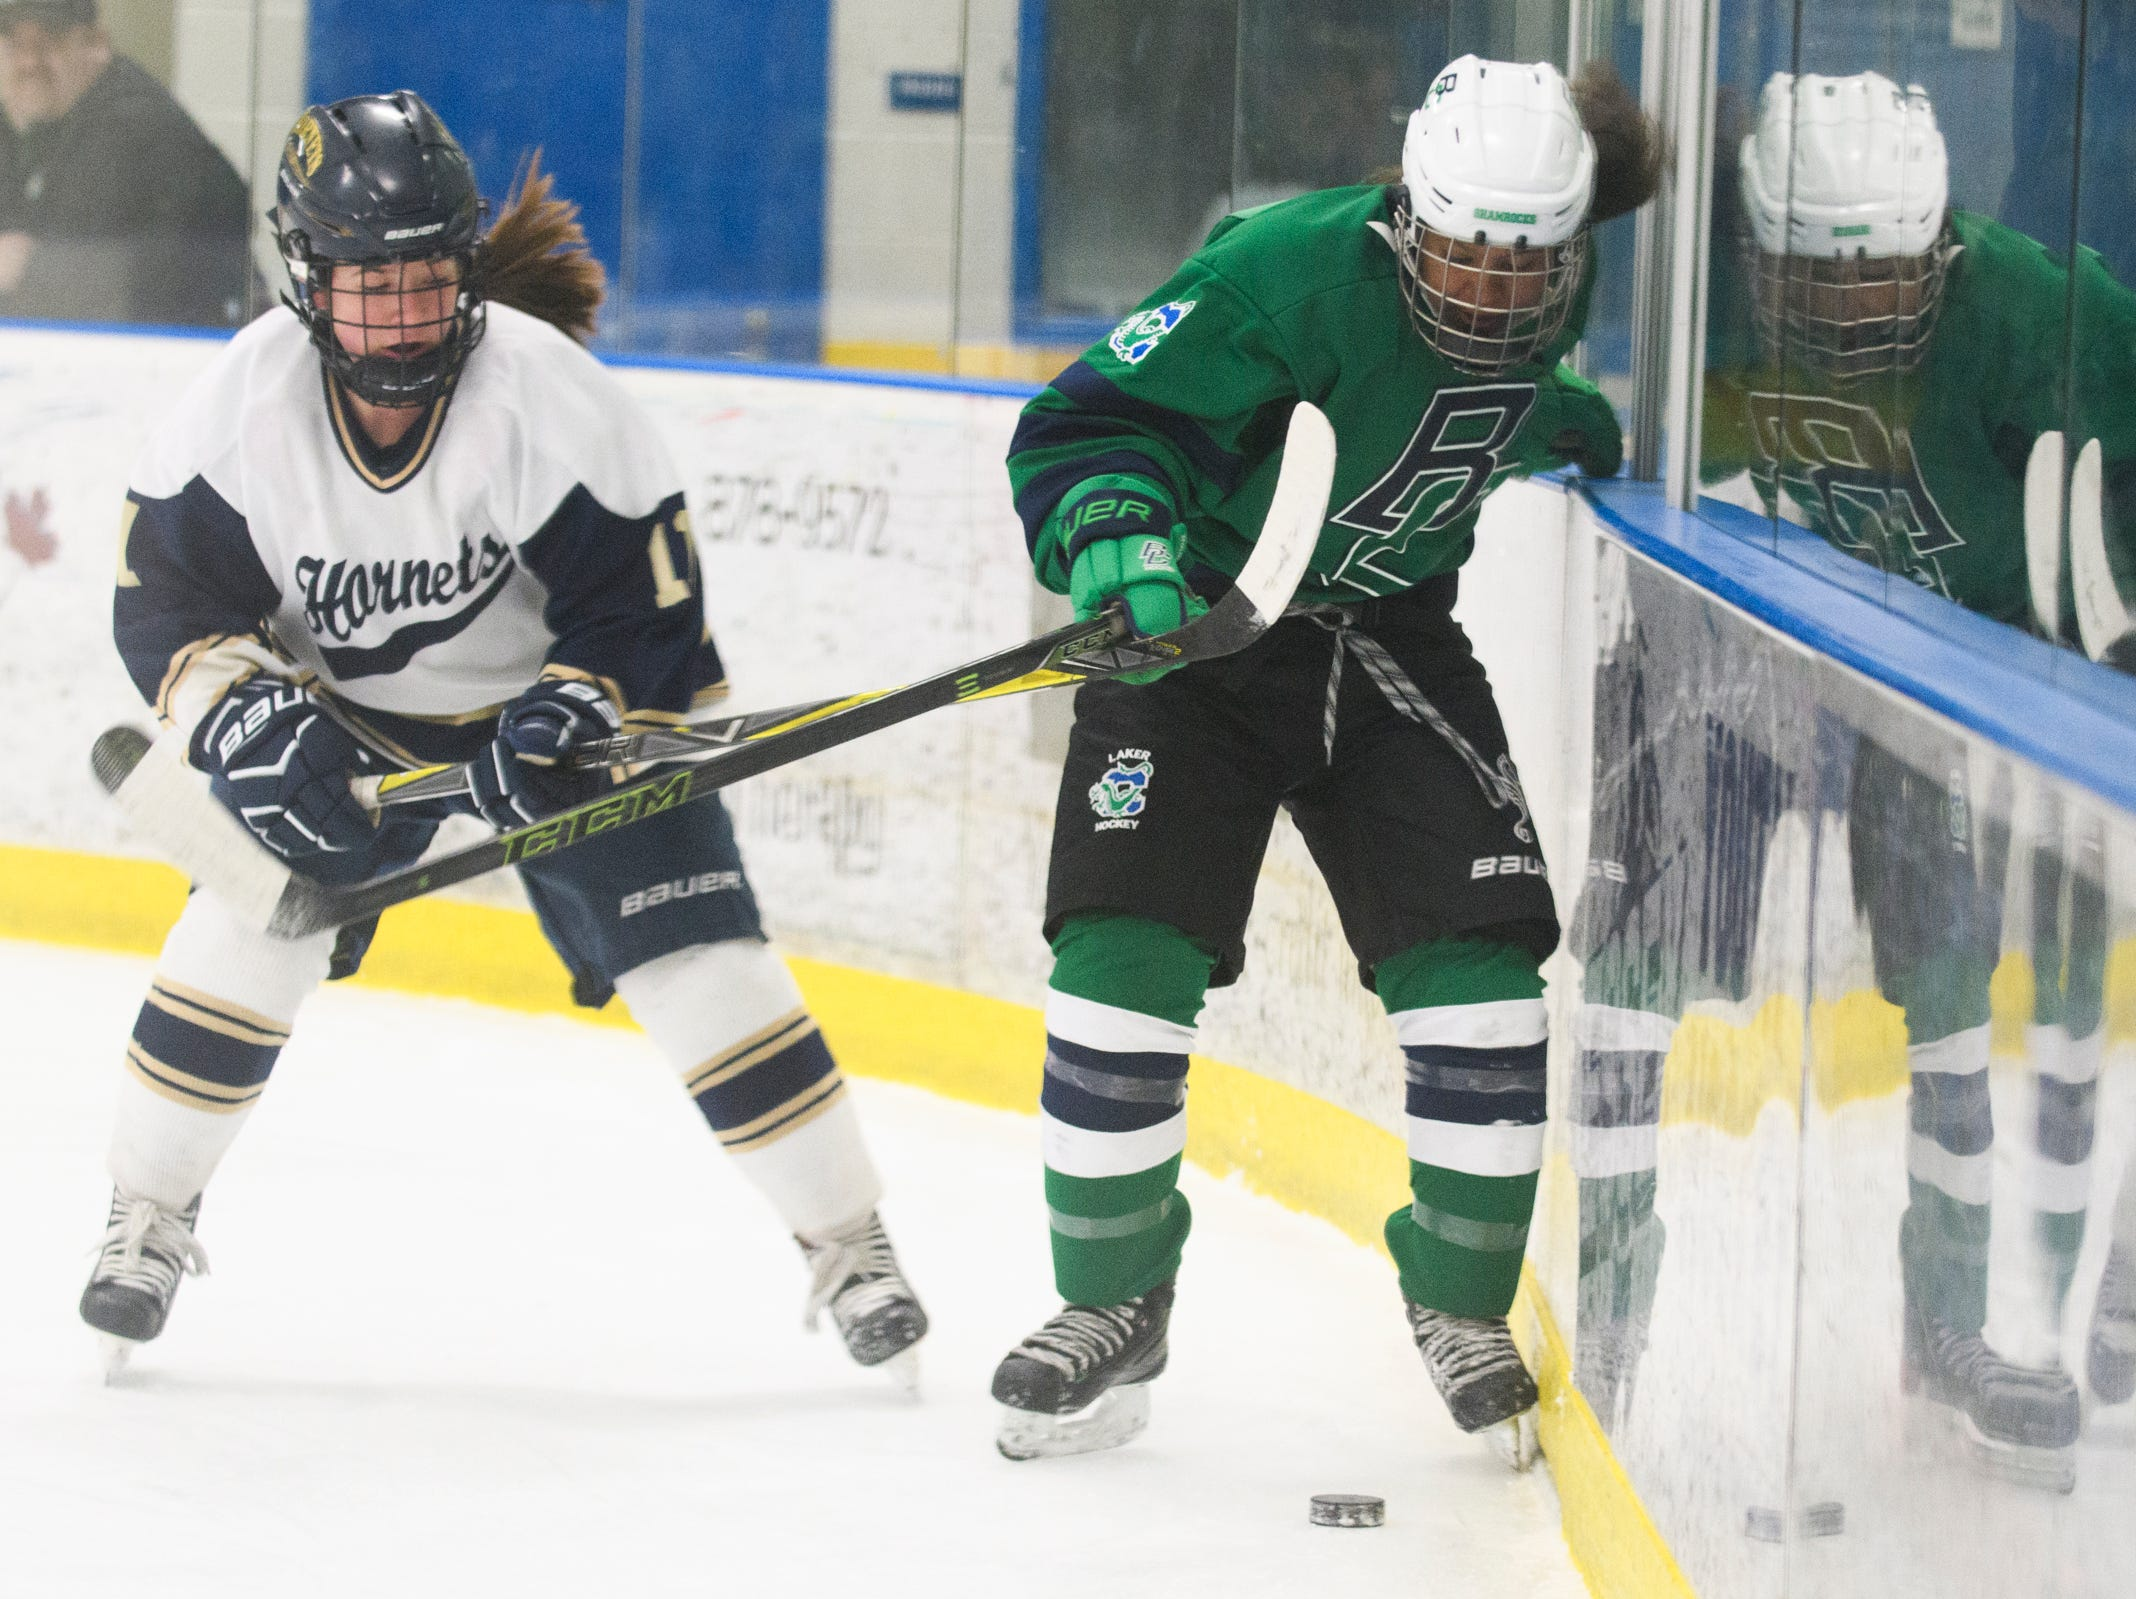 Essex's Francesca Martin (11) battles for the puck with Burlington/Colchester's Lane Sky (11) during the girls semi final hockey game between the Burlington/Colchester Sea Lakers vs. Essex Hornets at Essex skating rink on Saturday afternoon March 9, 2019 in Essex, Vermont.